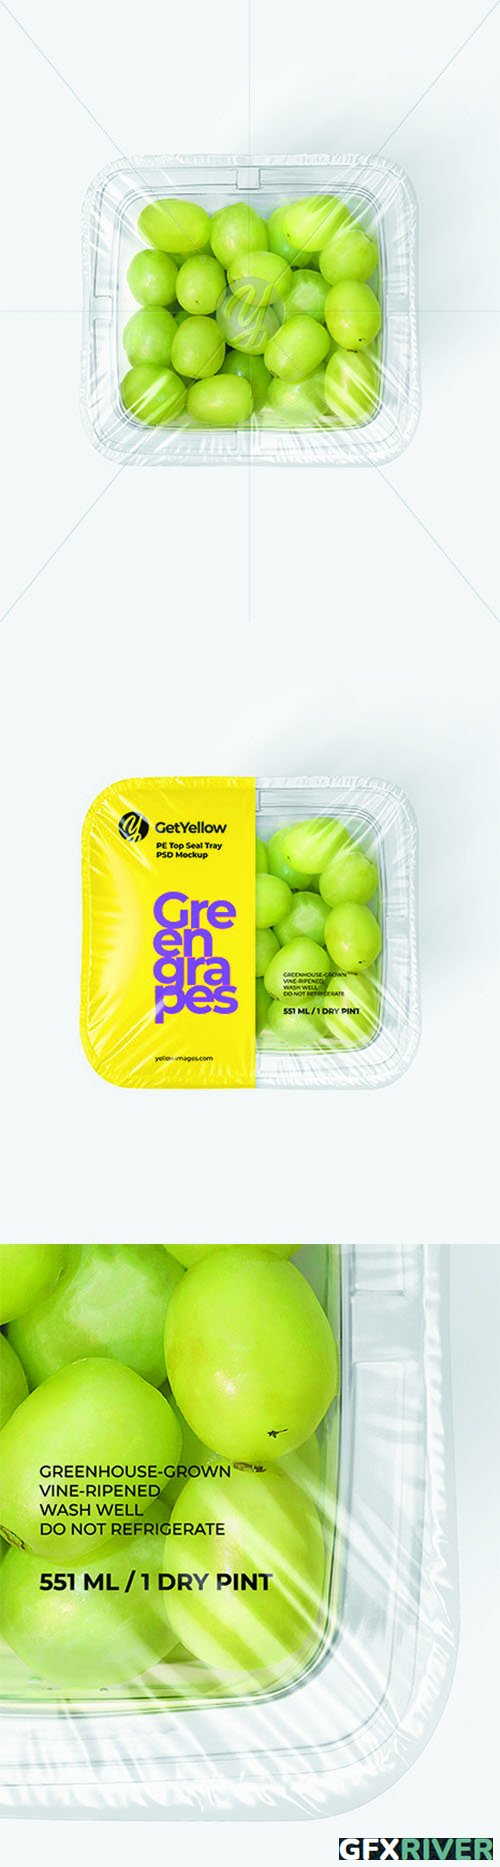 Clear Plastic Tray with Green Grapes Mockup 68893 TIF